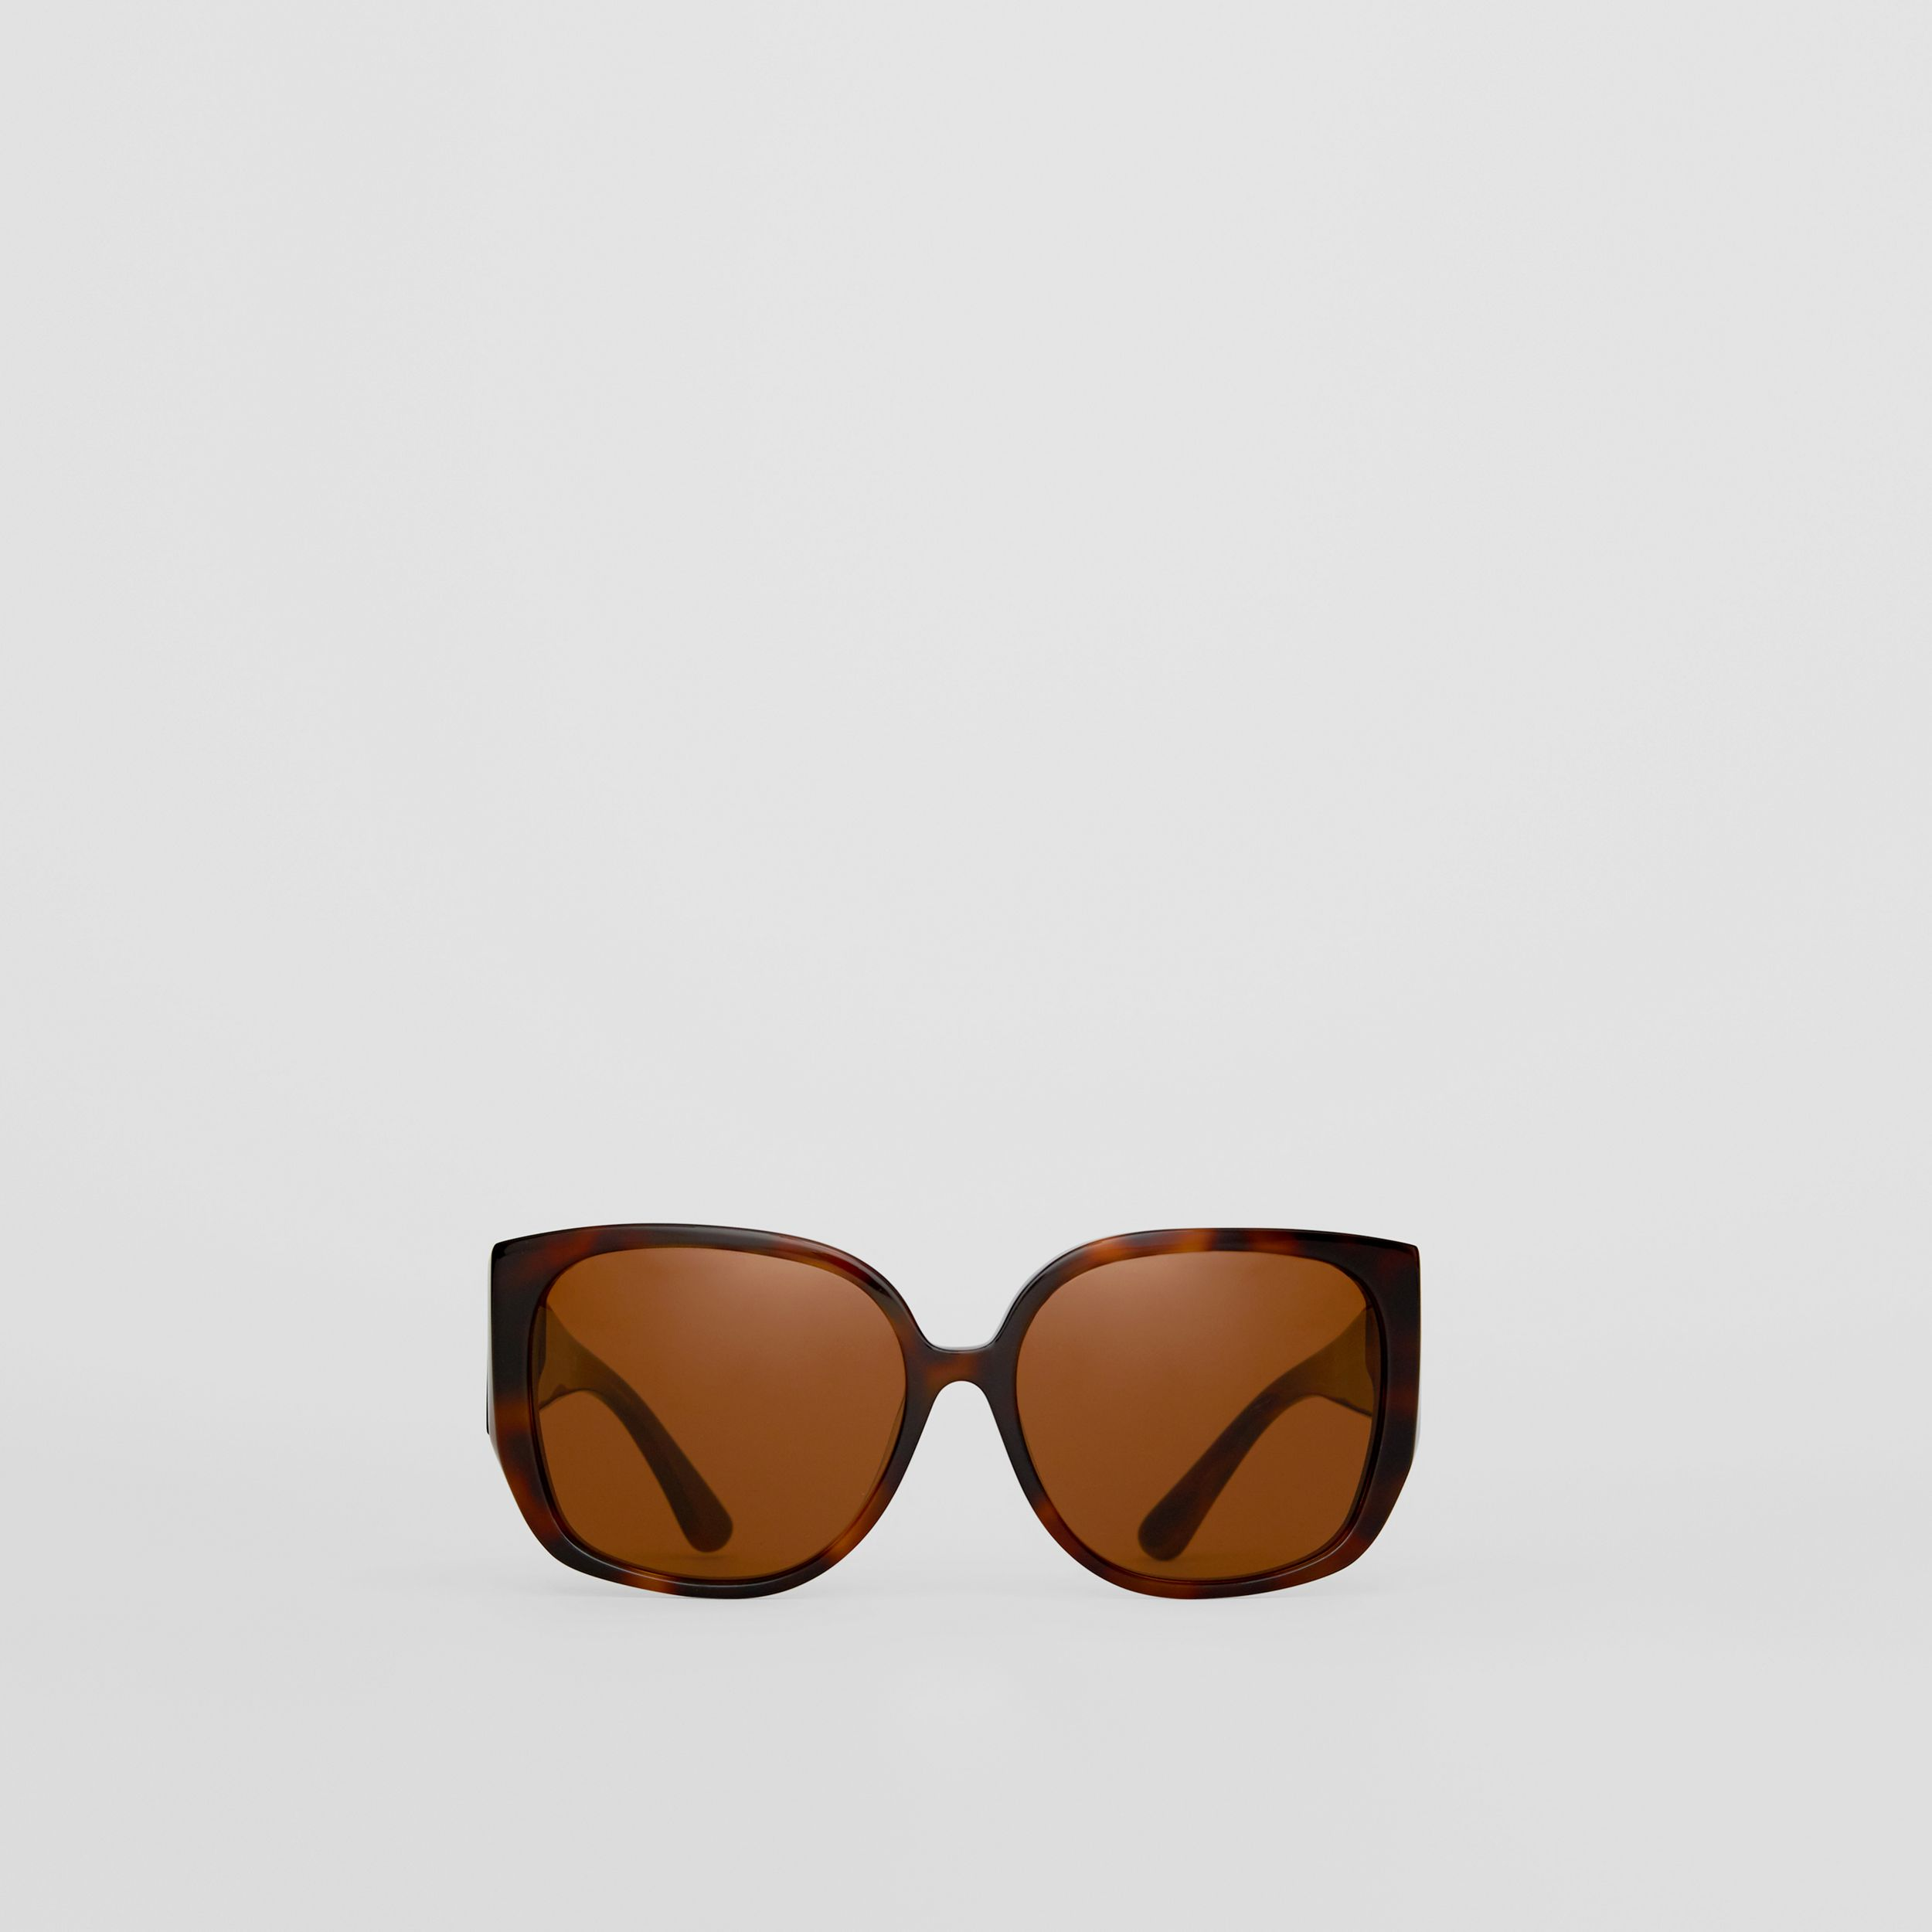 Oversized Butterfly Frame Sunglasses in Tortoiseshell - Women | Burberry United Kingdom - 1